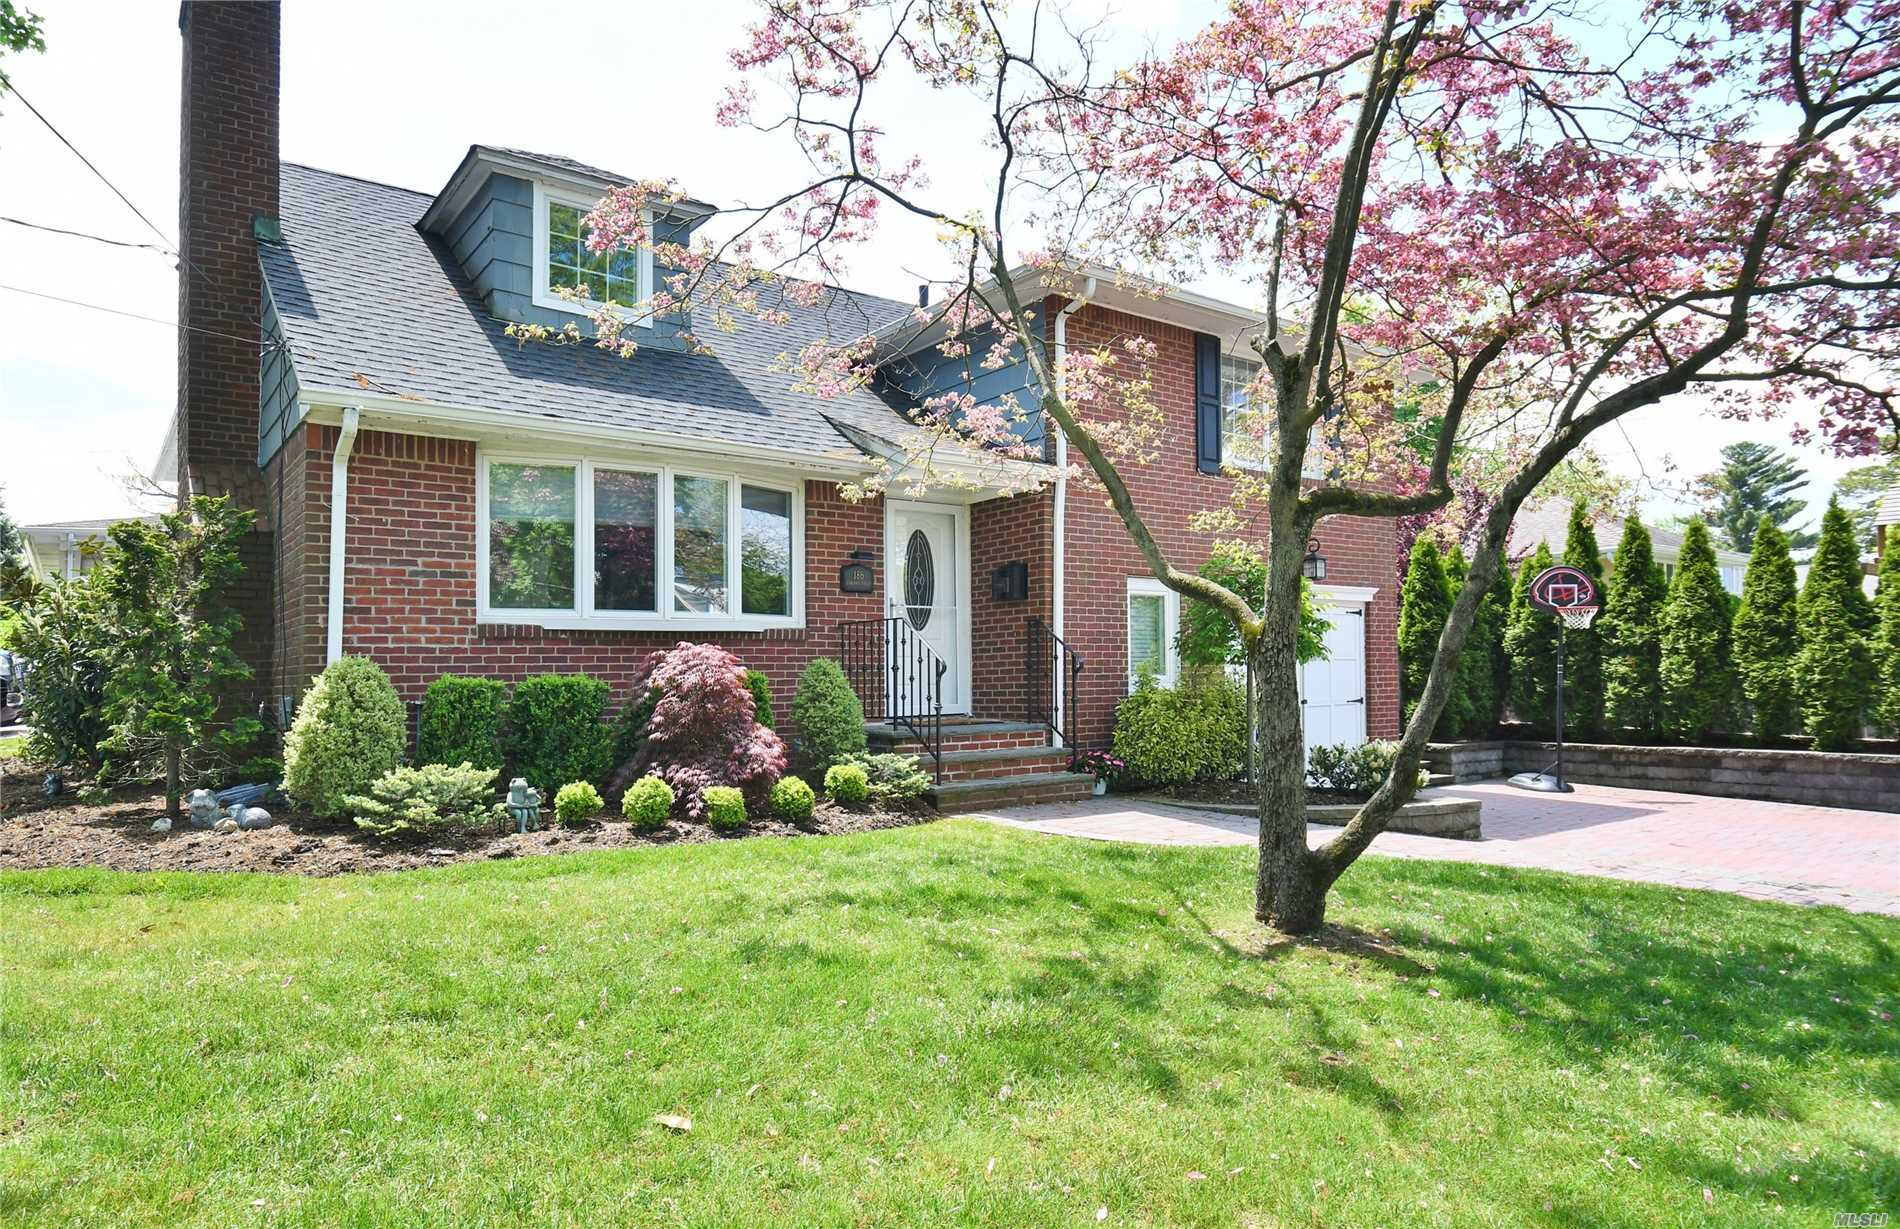 Renovated split level home in the heart of East Williston. Move right in this lovely home... new kitchen with s/s appliances 2 new bathrooms, new heating system, beautiful crown molding and hardwood floors through out. Close to LIRR, parks, schools, library and restaurants.